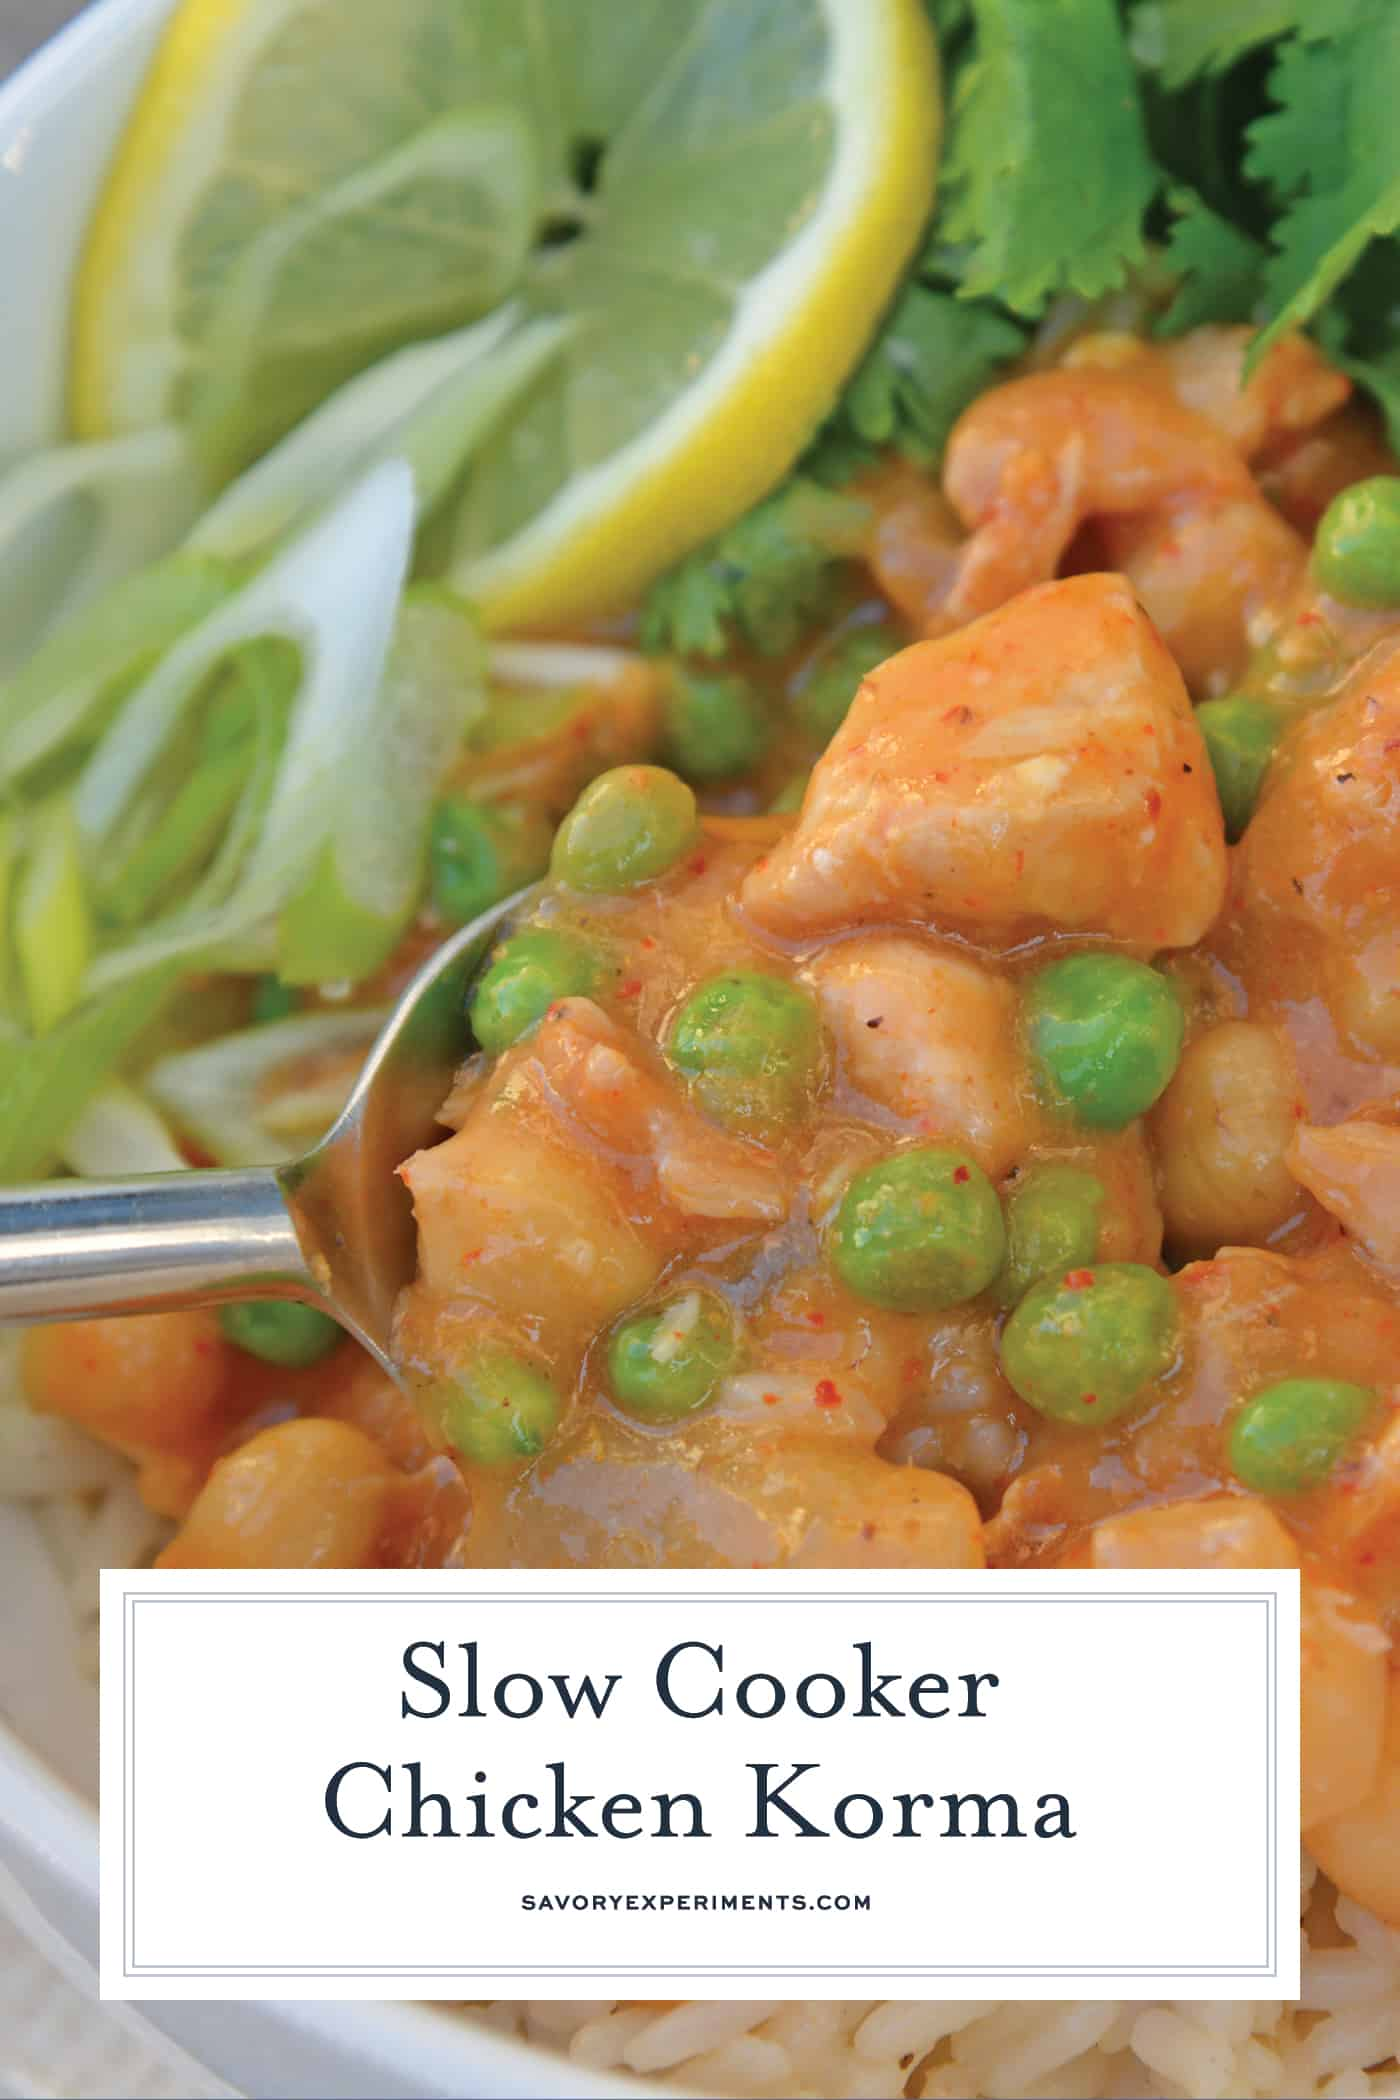 Slow Cooker Chicken Korma is a healthier way to prepare dinner! Only 10 minutes of prep time and into the pot! Loaded with dietary fiber and protein. #chickenkorma #easyindianrecipes #redcurryrecipes www.savoryexperiments.com